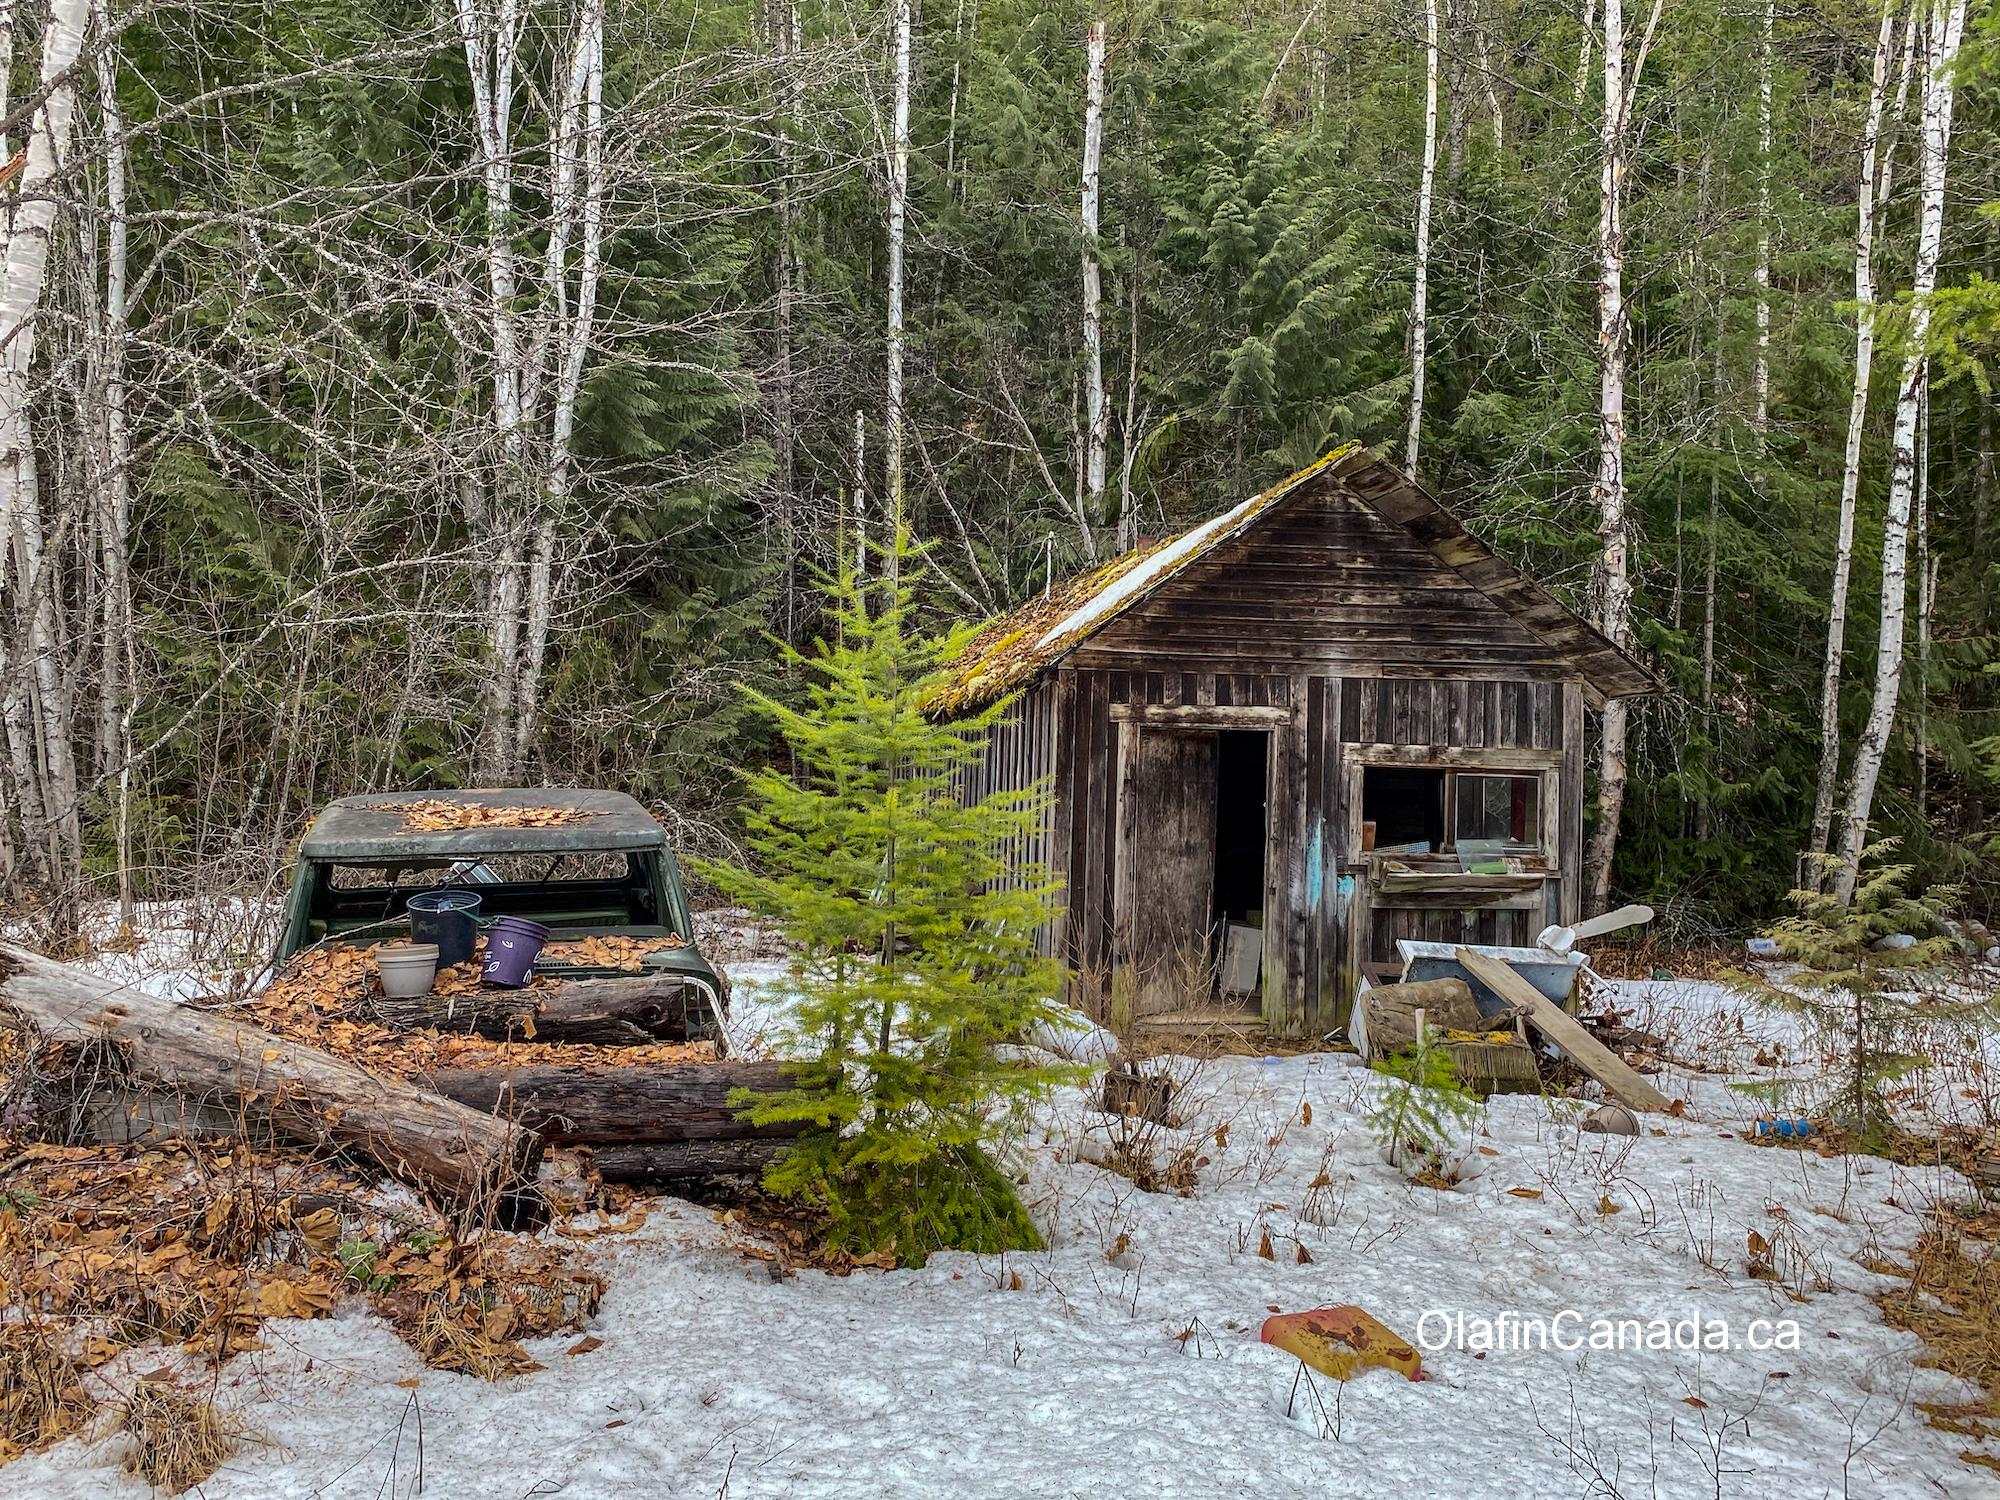 Abandoned old cabin on Stanley Flats in East Blackpool, near Clearwater #olafincanada #britishcolumbia #discoverbc #abandonedbc #cabin